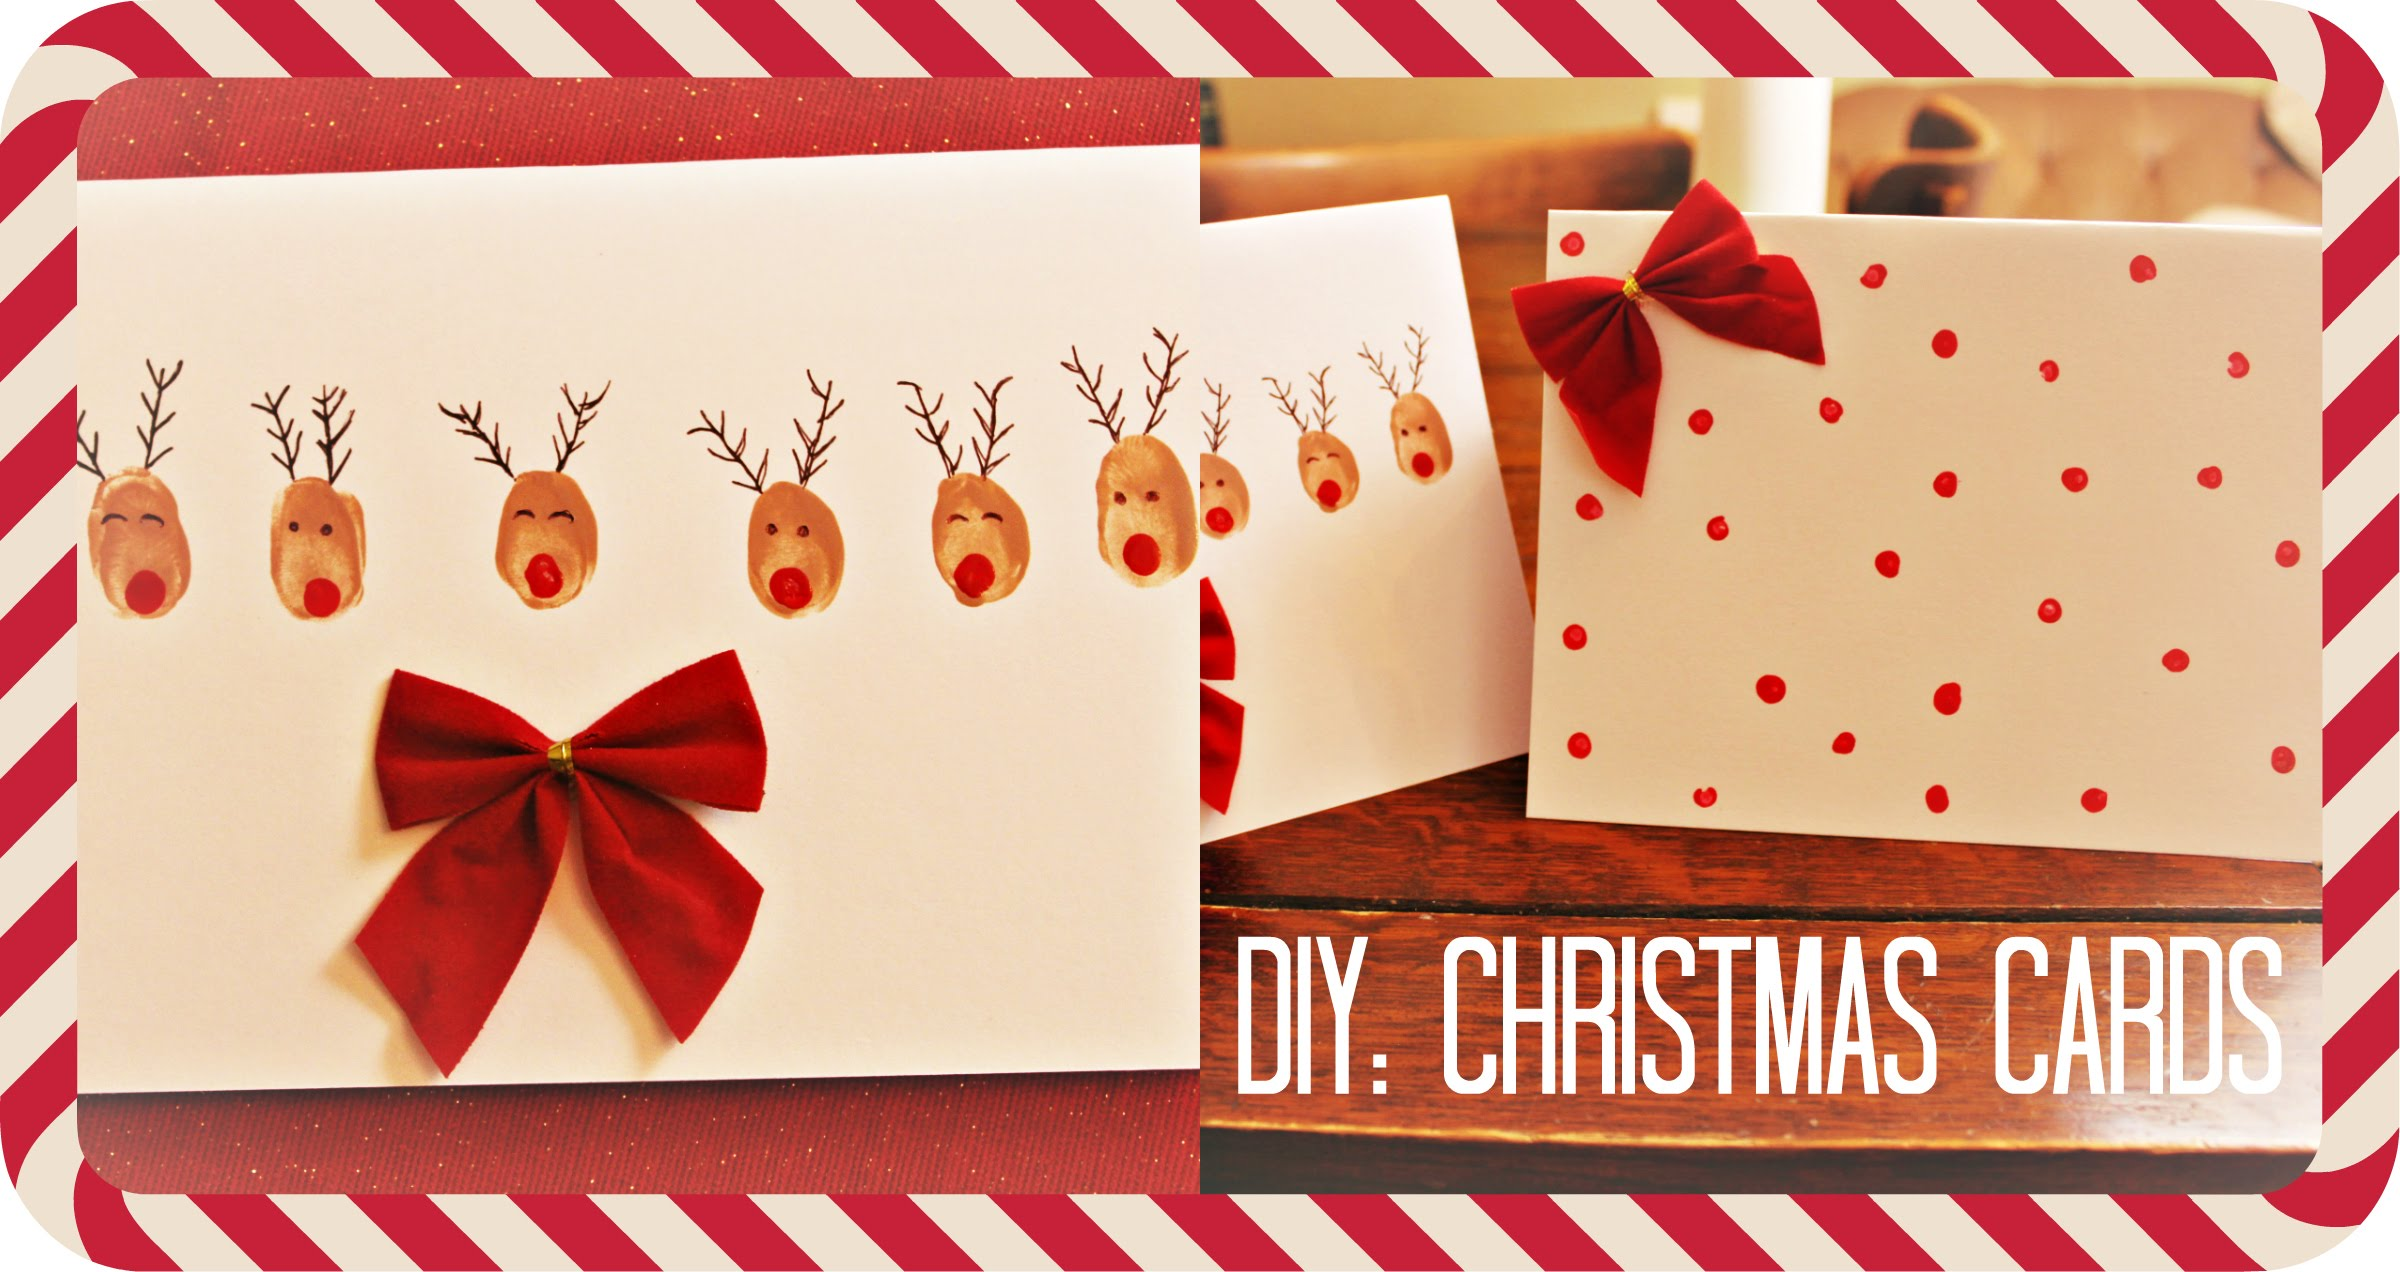 DIY Christmas Cards/Holiday Cards ❄️